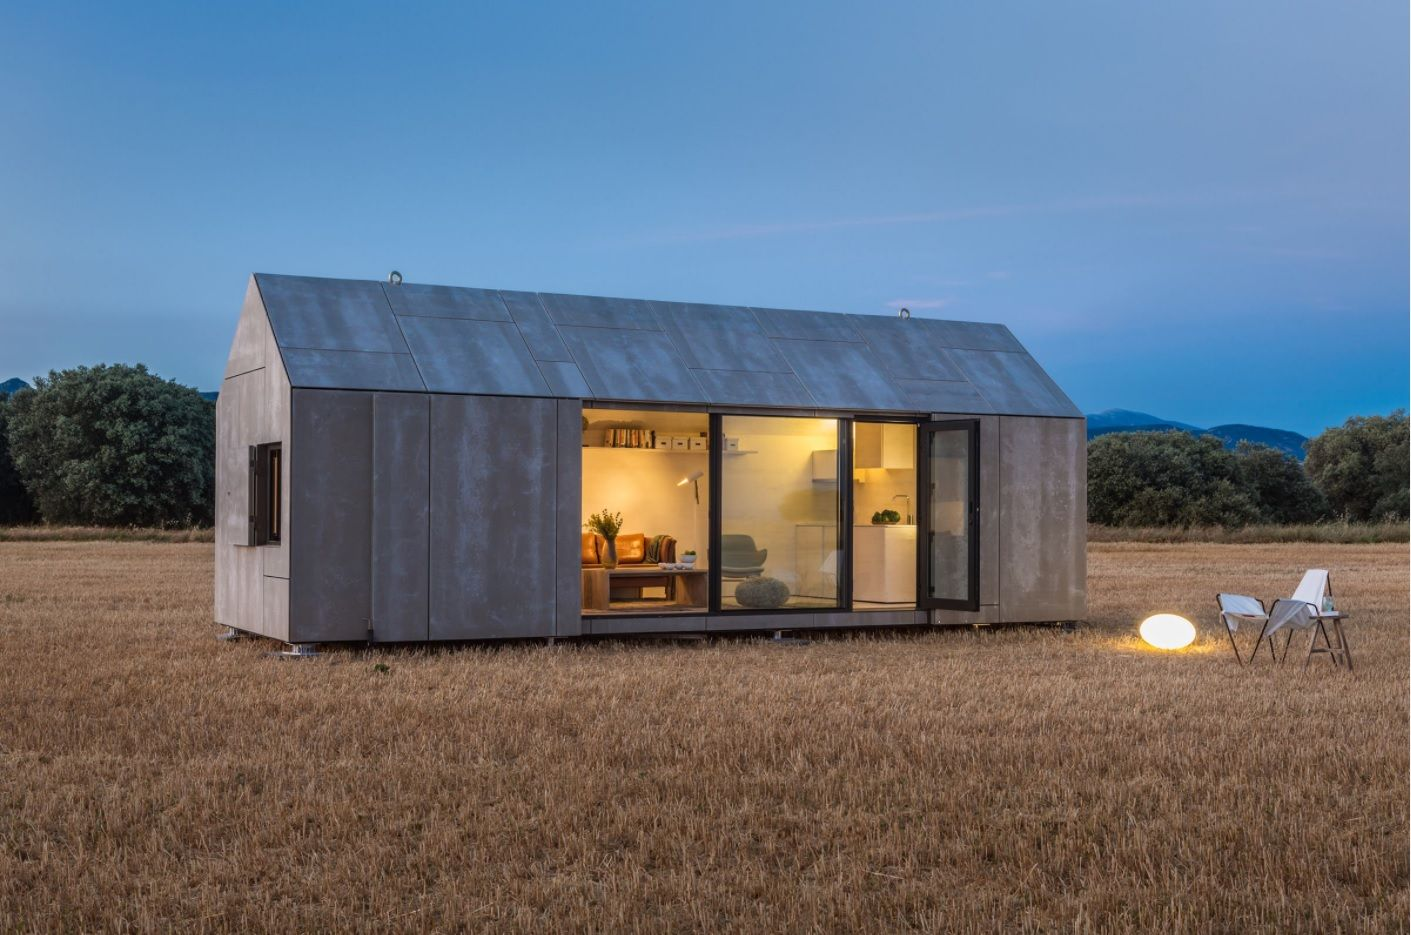 Modern Designs for Tiny Homes. Unified unusual hi-tech design for monolithic looking small cottage